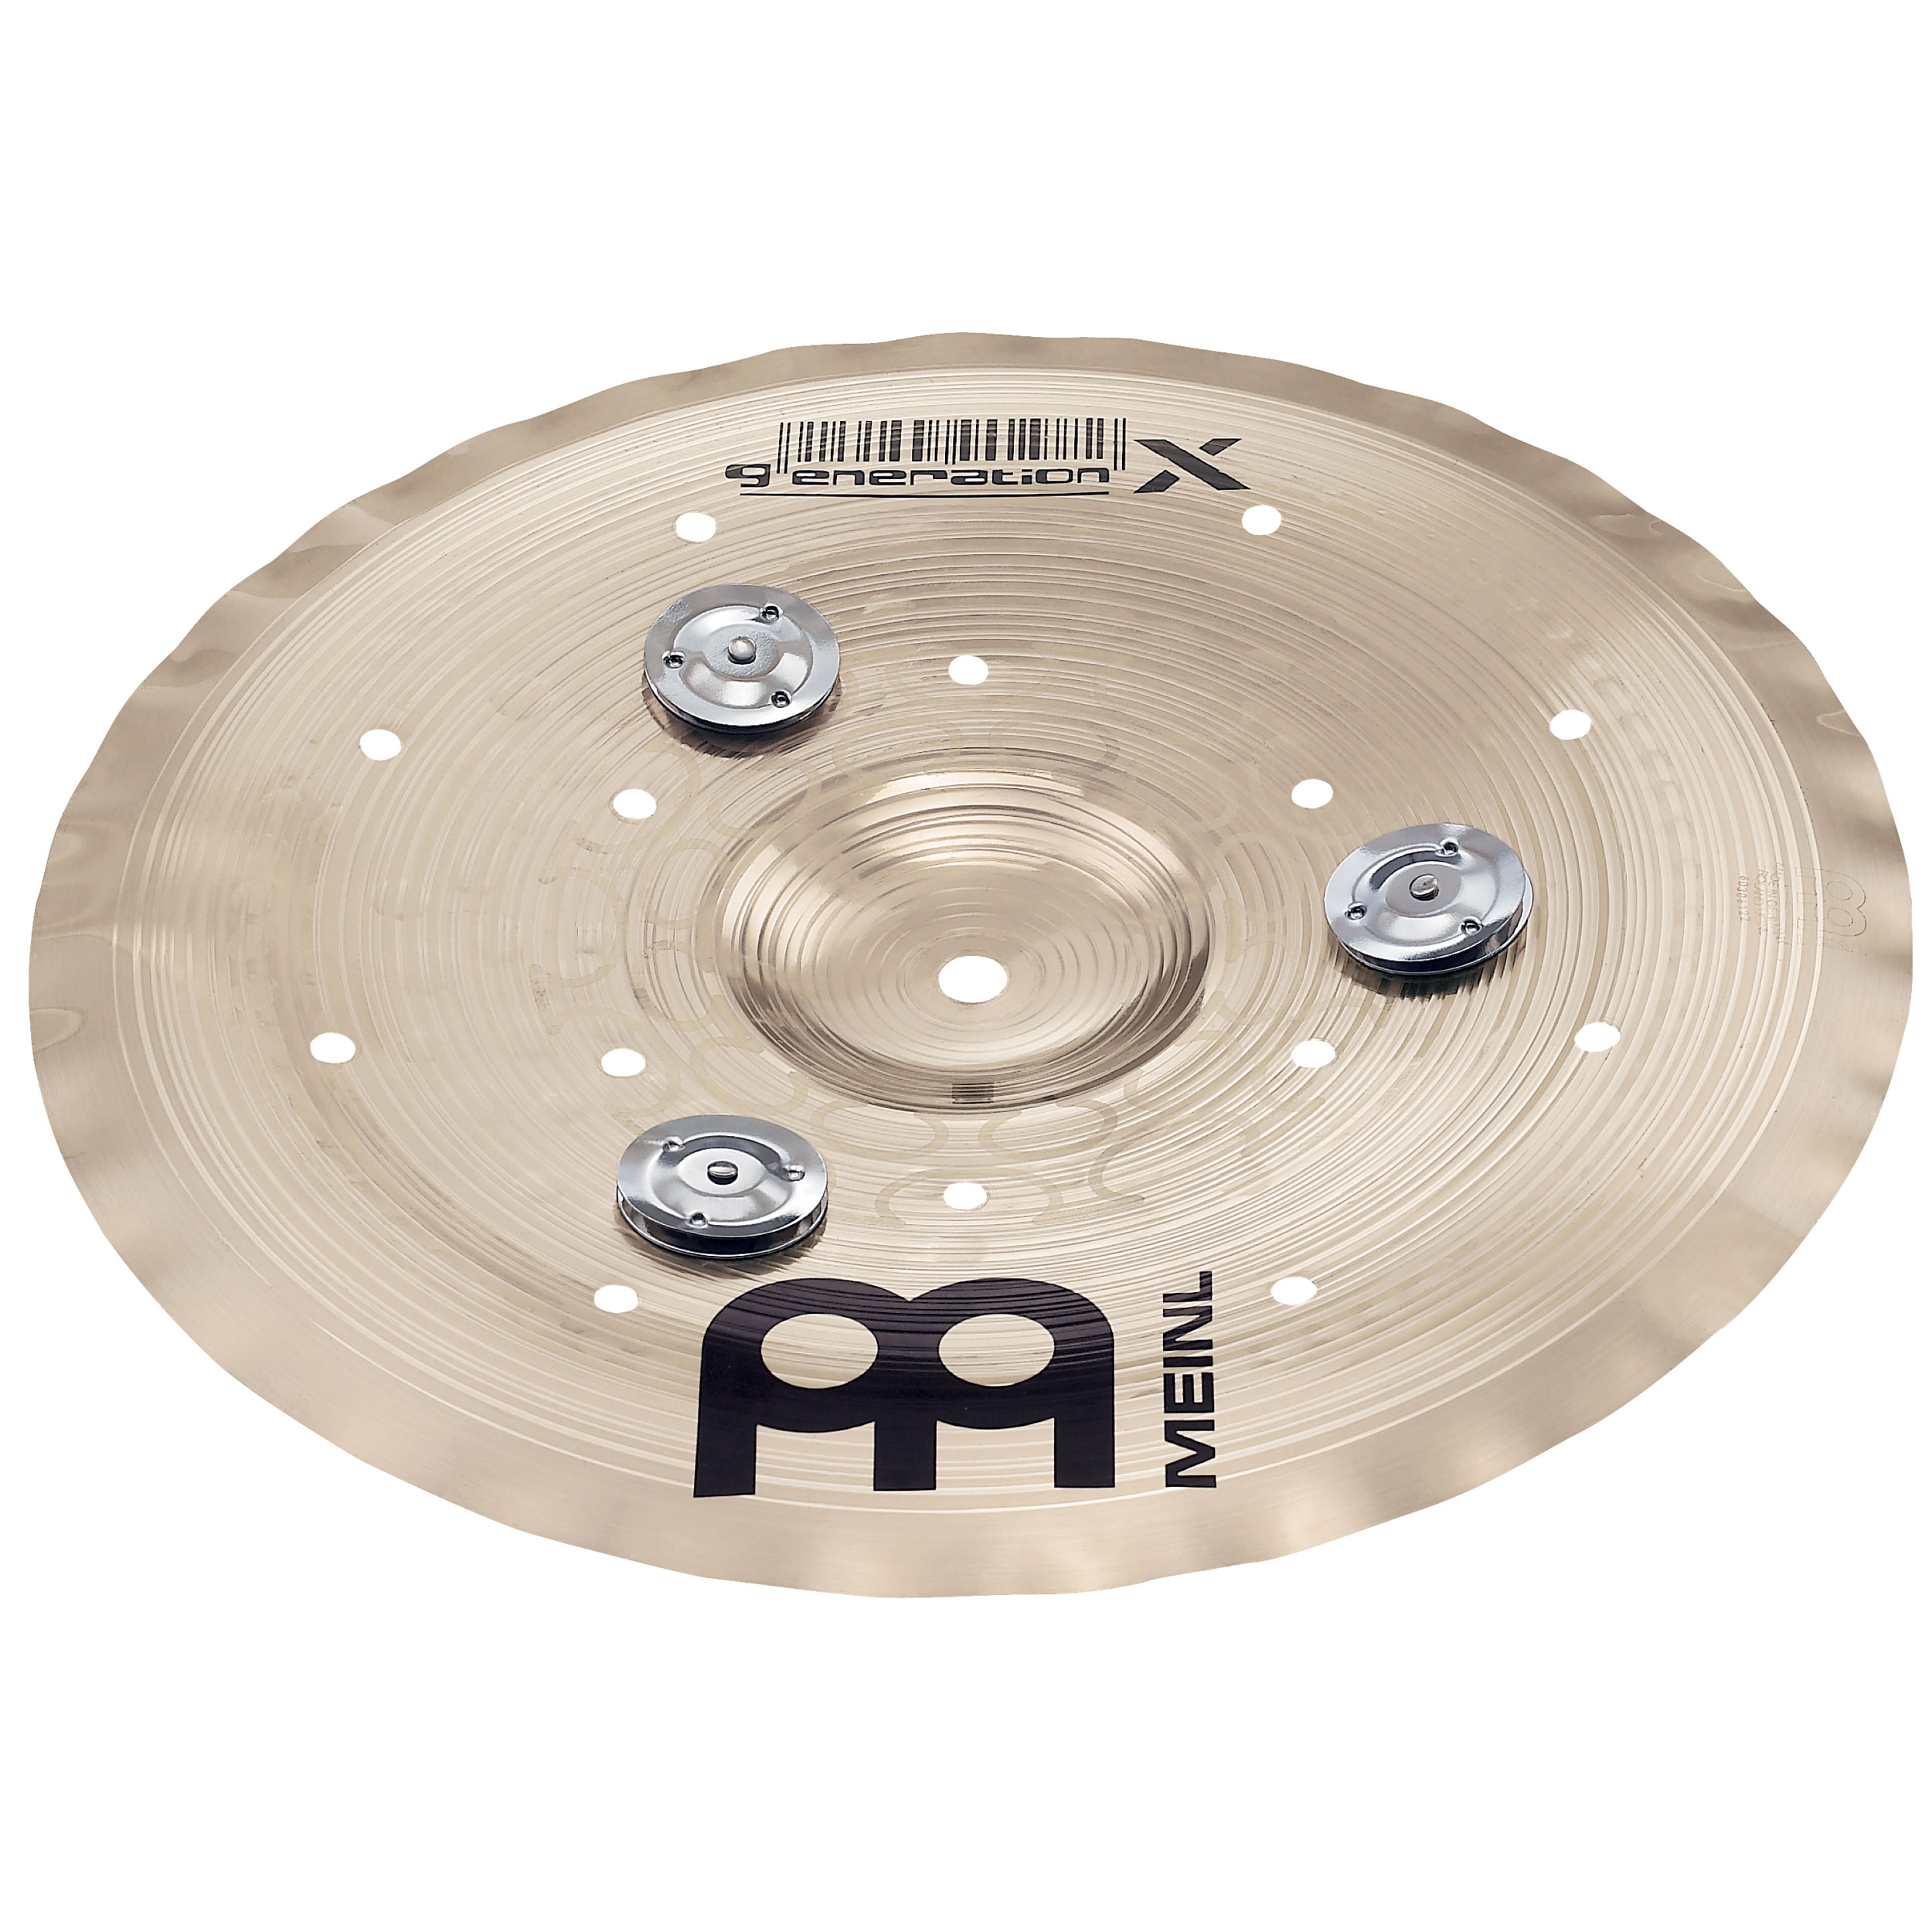 "Meinl 12"" Generation X Jingle Filter China Cymbal"